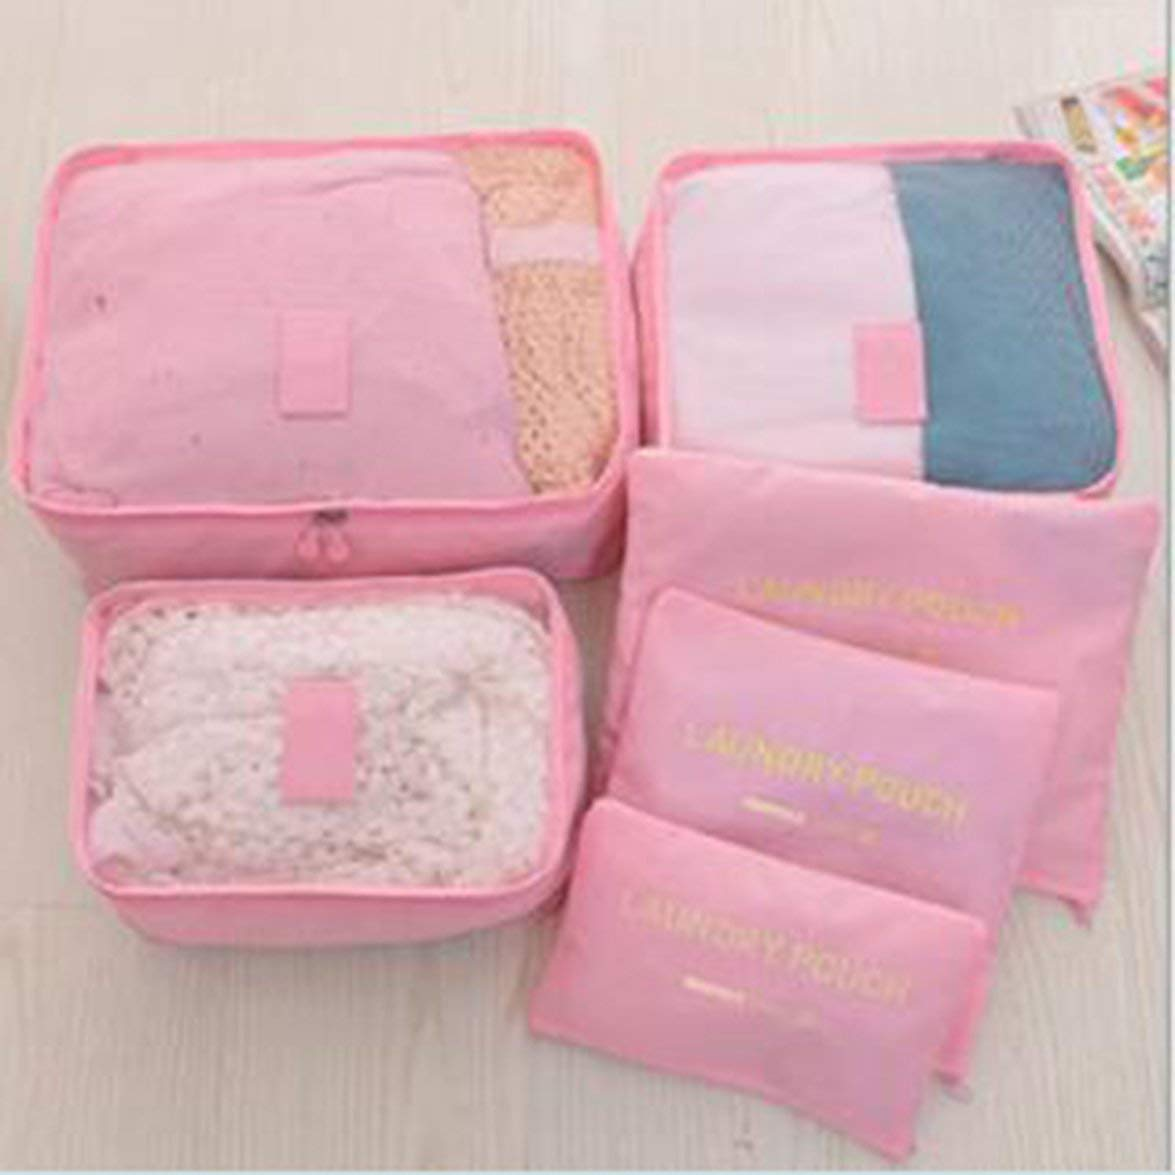 Romirofs 6 PCS Travel Storage Bag Set for Clothes Tidy Organizer Wardrobe Suitcase Pouch Travel Organizer Bag Case Packing Cube Bag